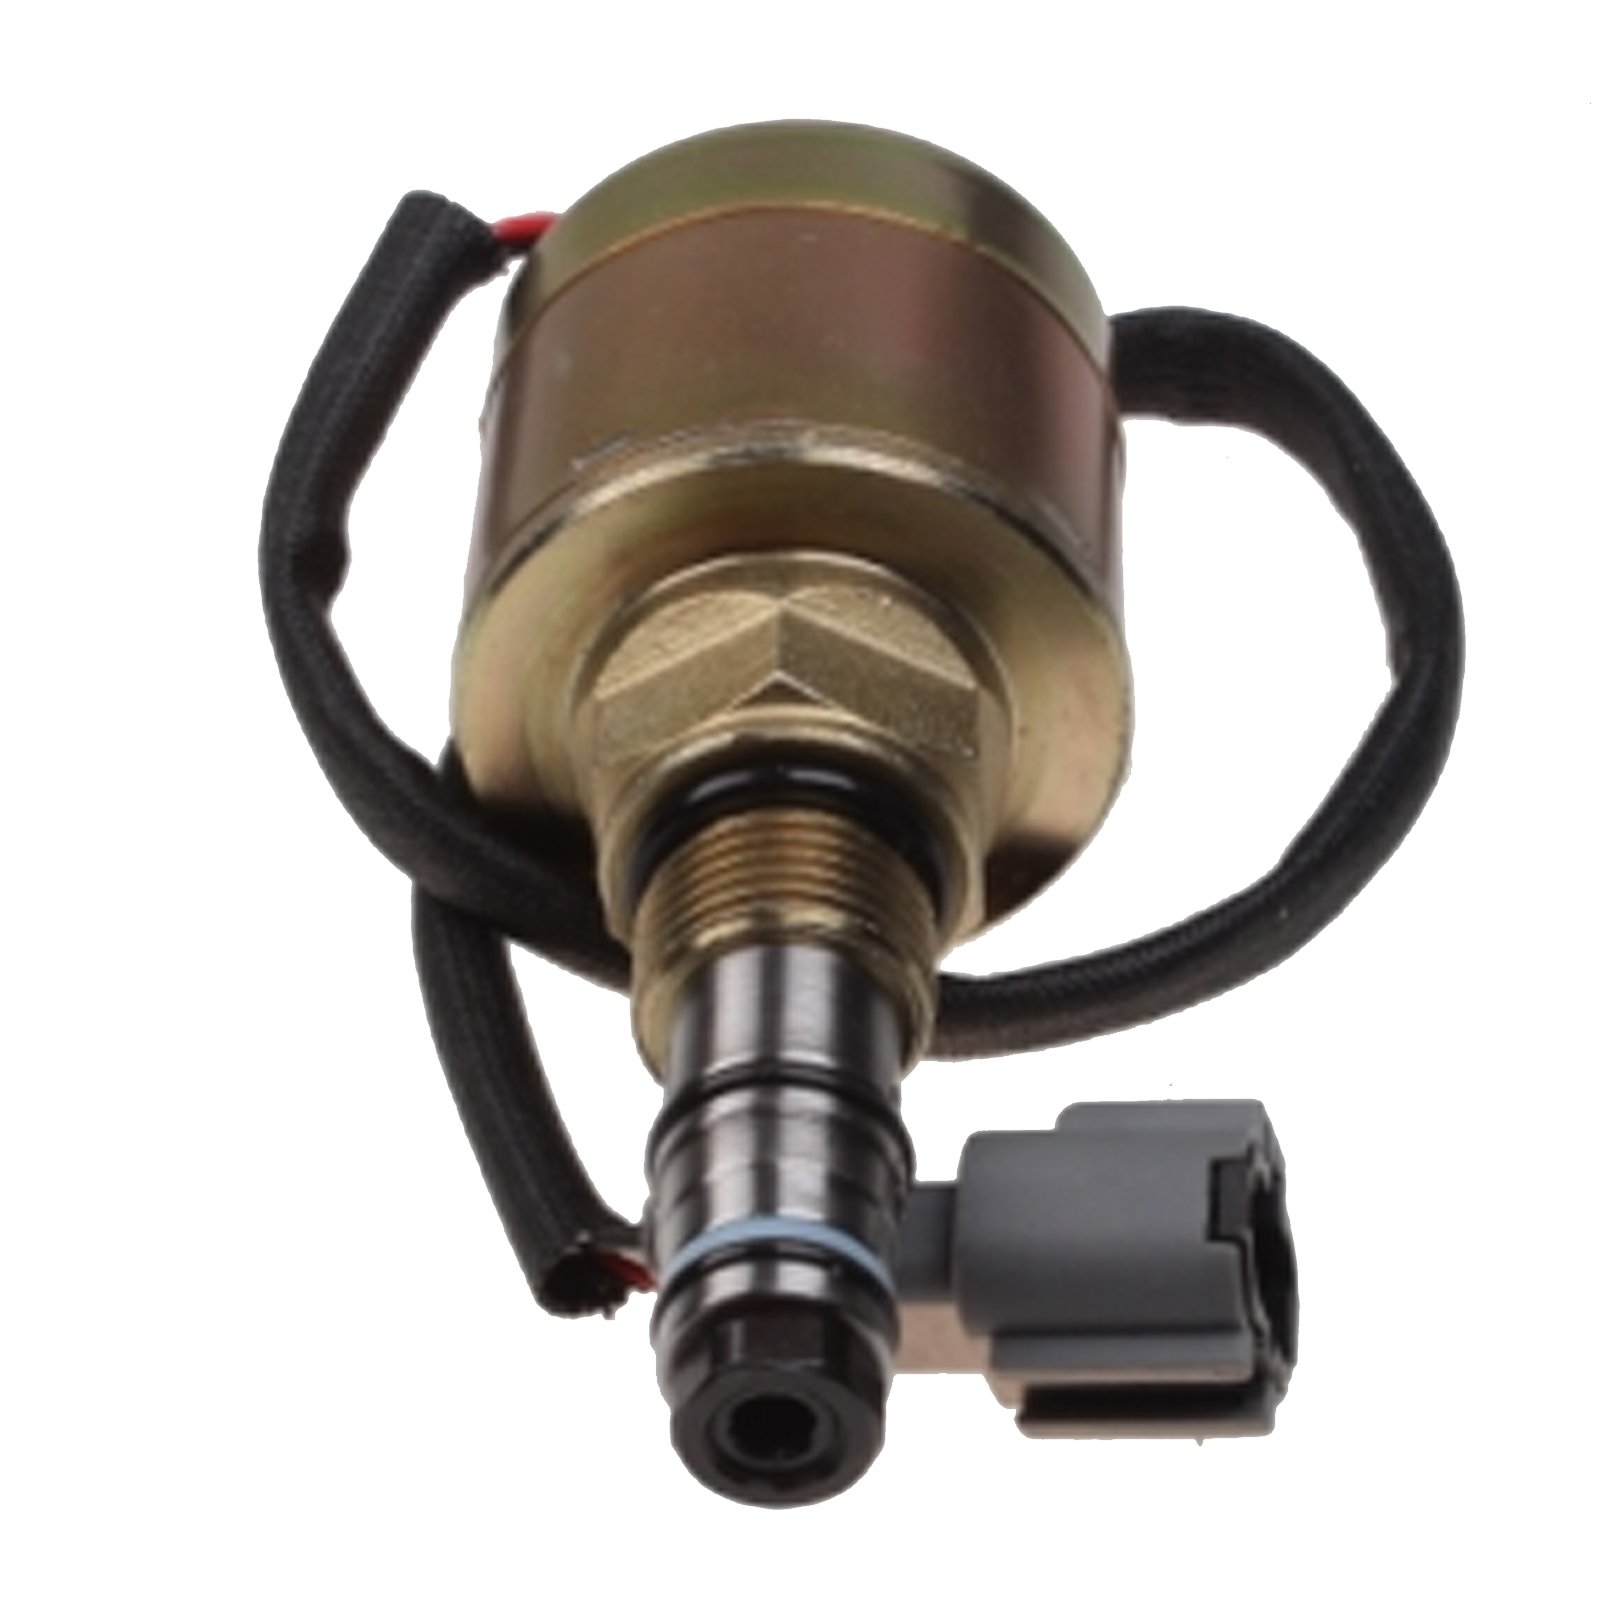 Friday Part Differential Pressure Pickup Sensor 4339559 for John Deere Excavator 450LC 490E 550LC 790ELC 992ELC